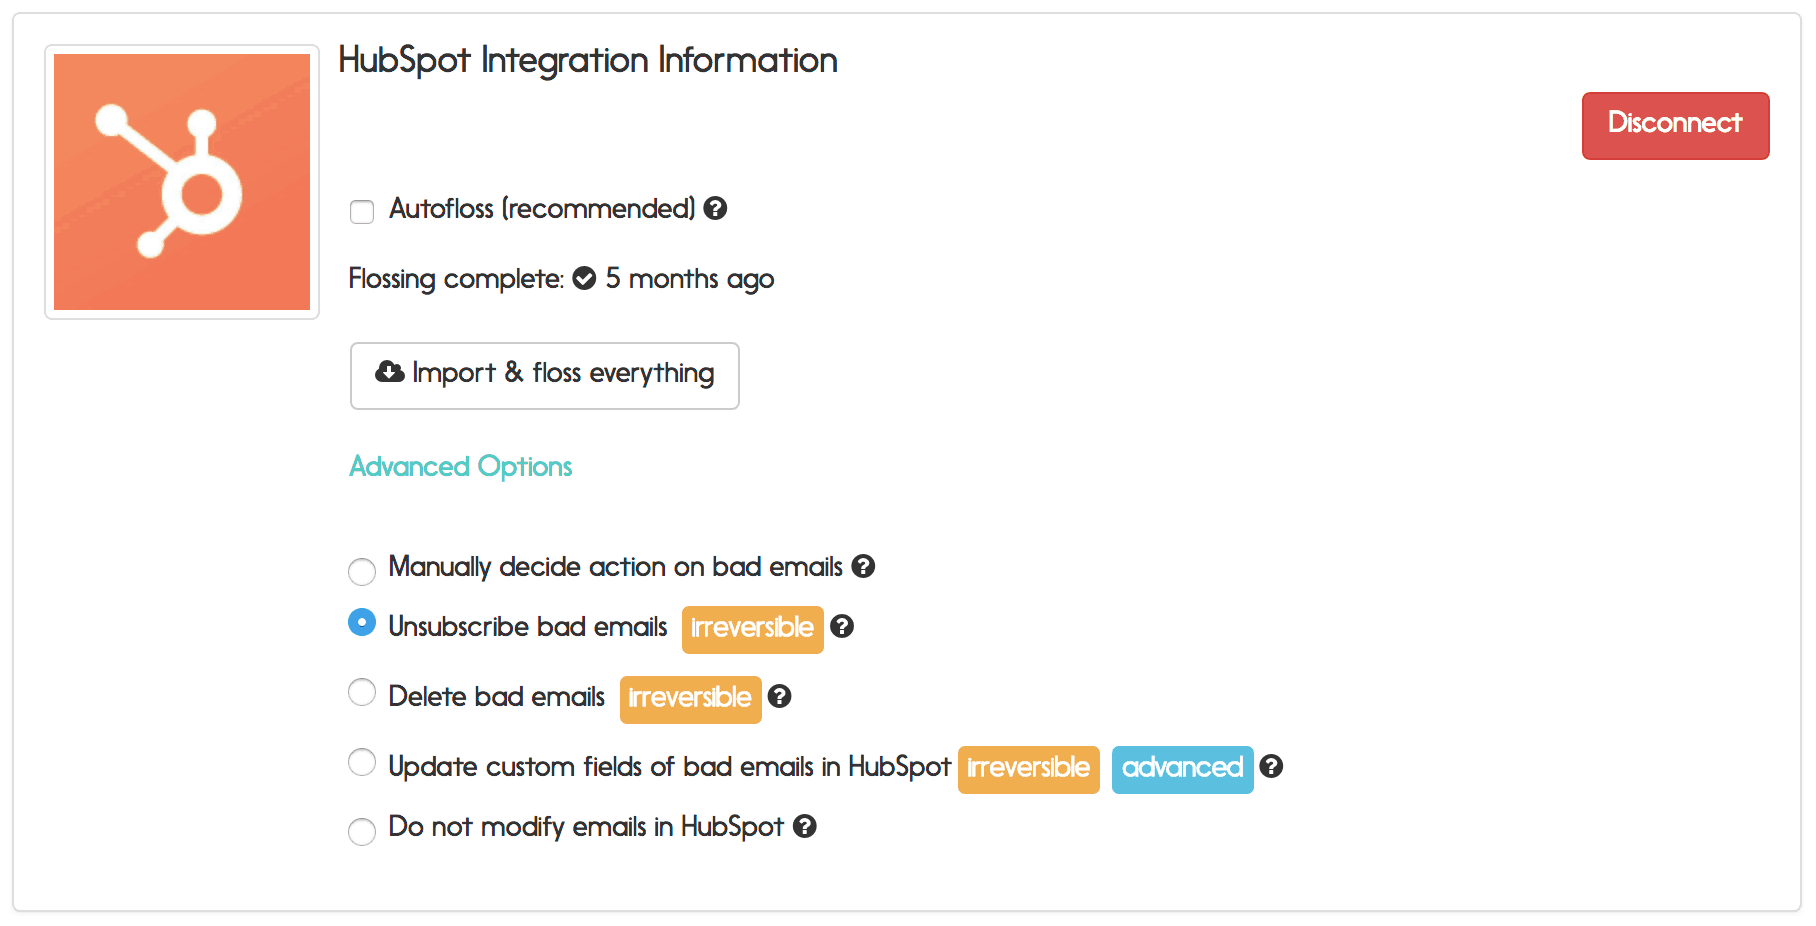 hubspot email verification options